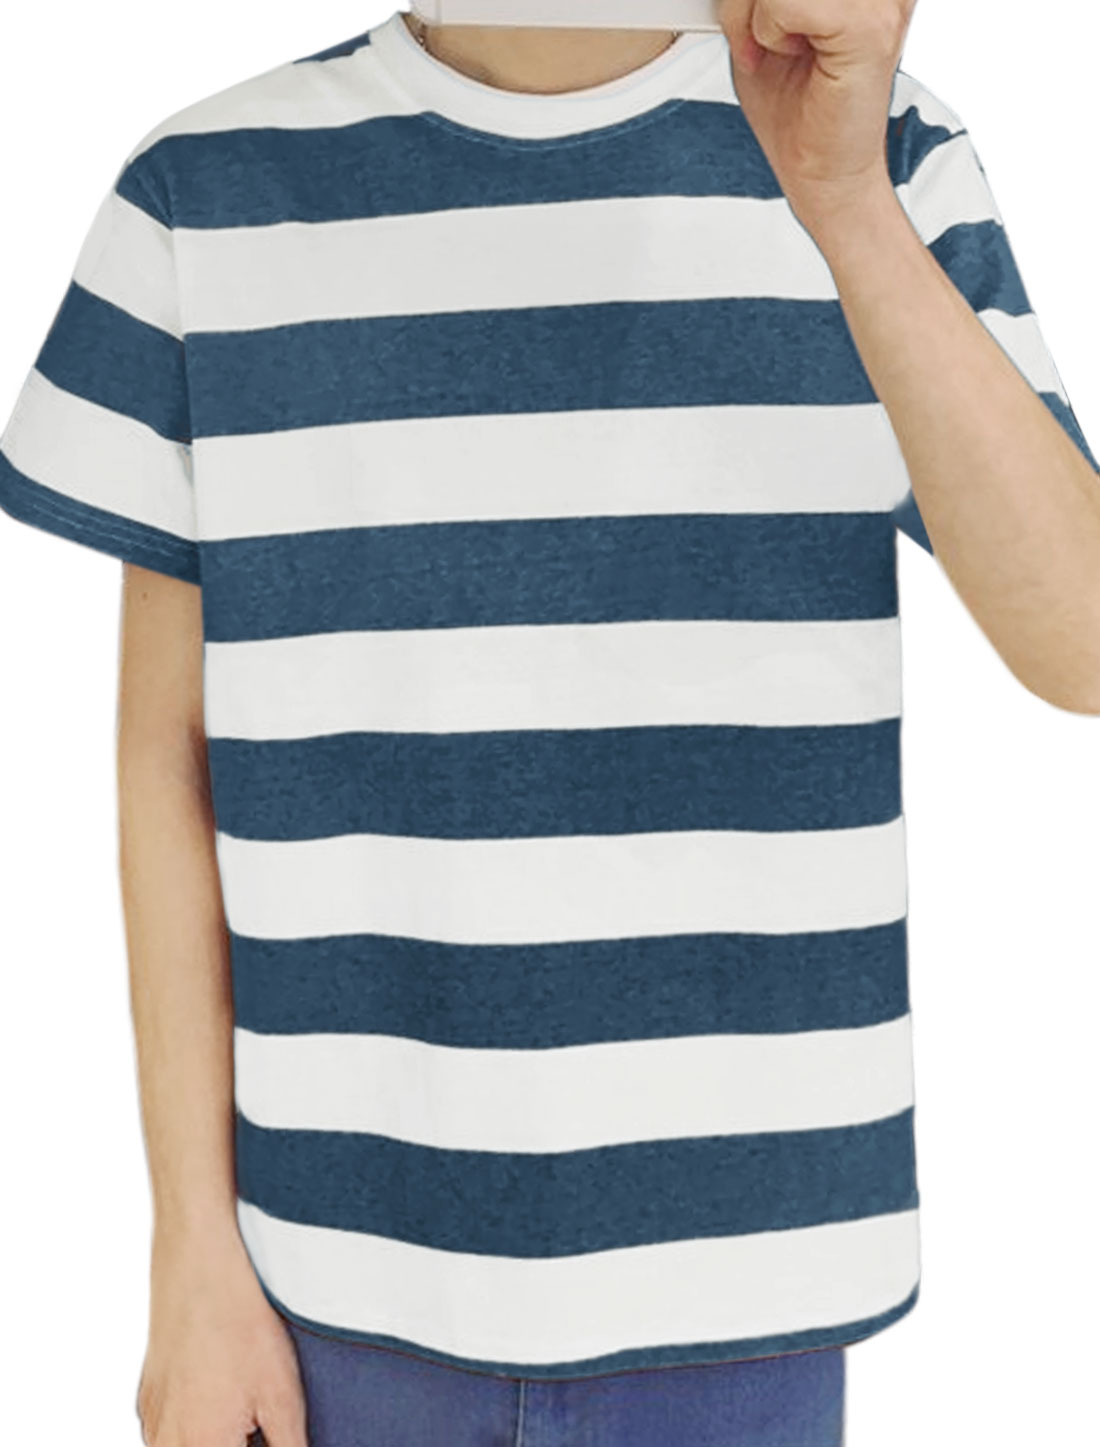 Men Stripes Crew Neck Ribbed Detail Short Sleeves Tee Shirt Blue S